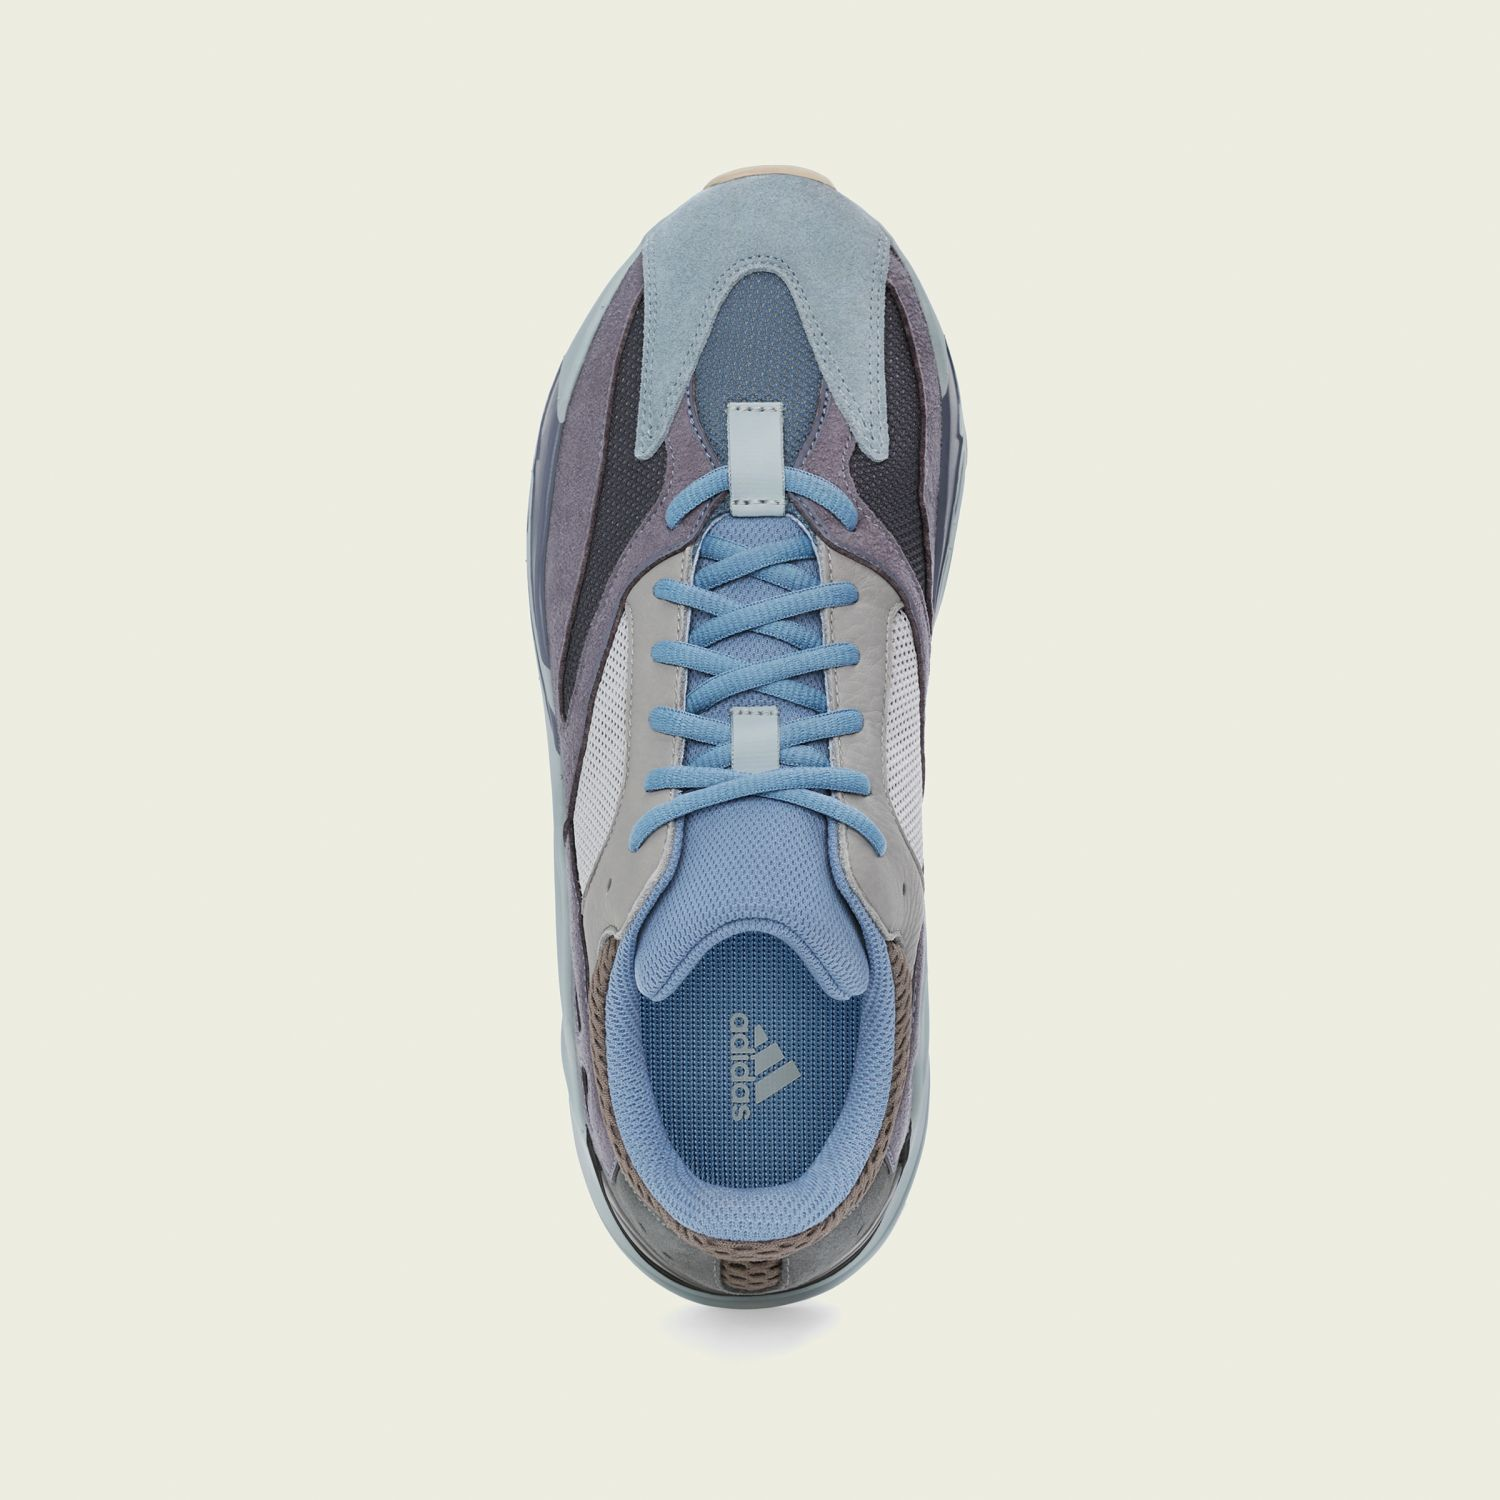 Yeezy Boost 700 Carbon Blue [3]